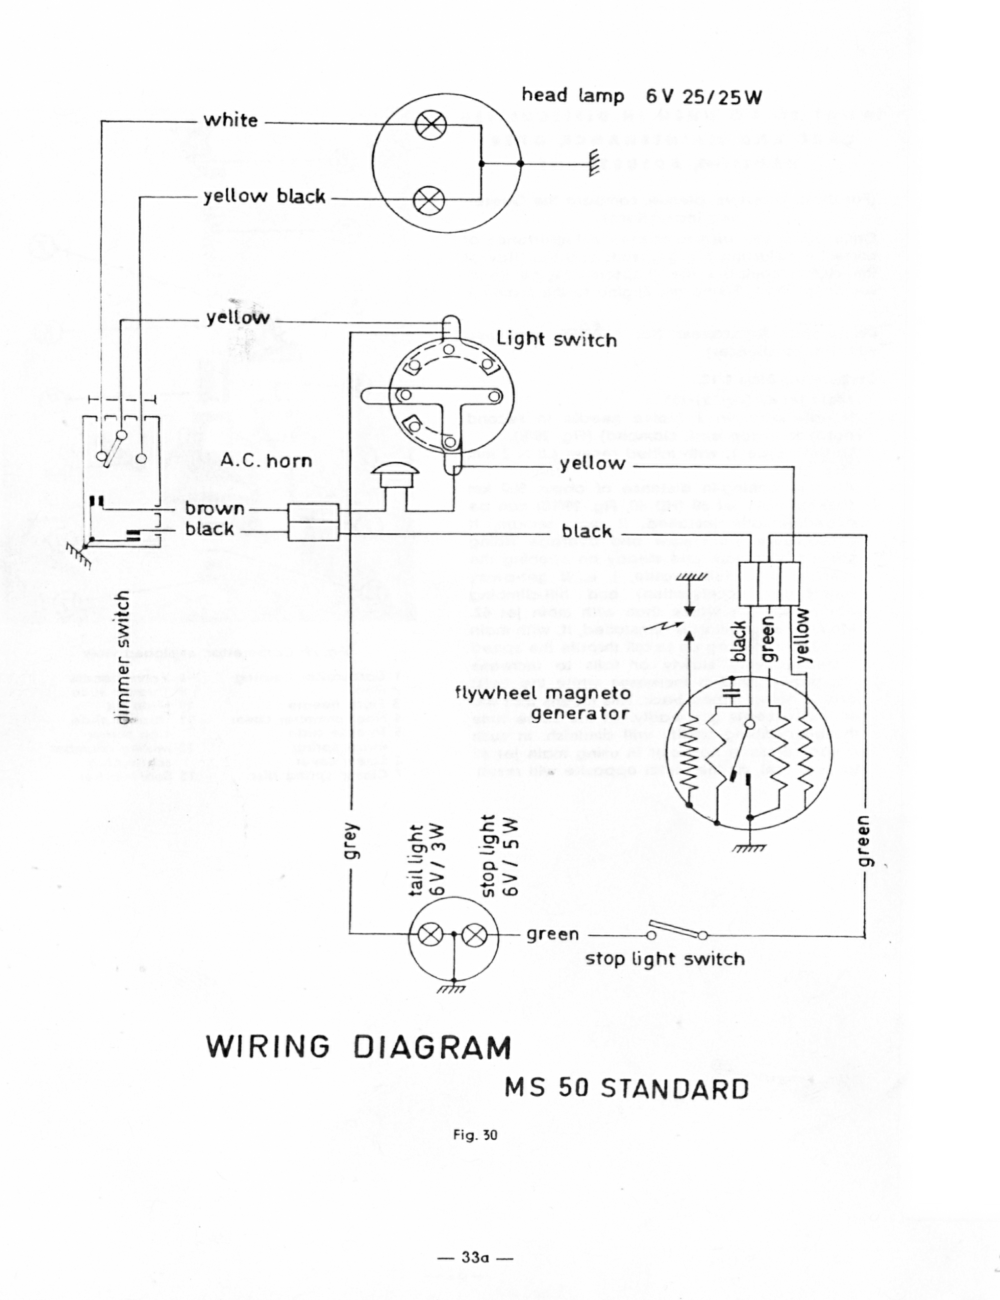 medium resolution of puch ms50 wiring diagram png